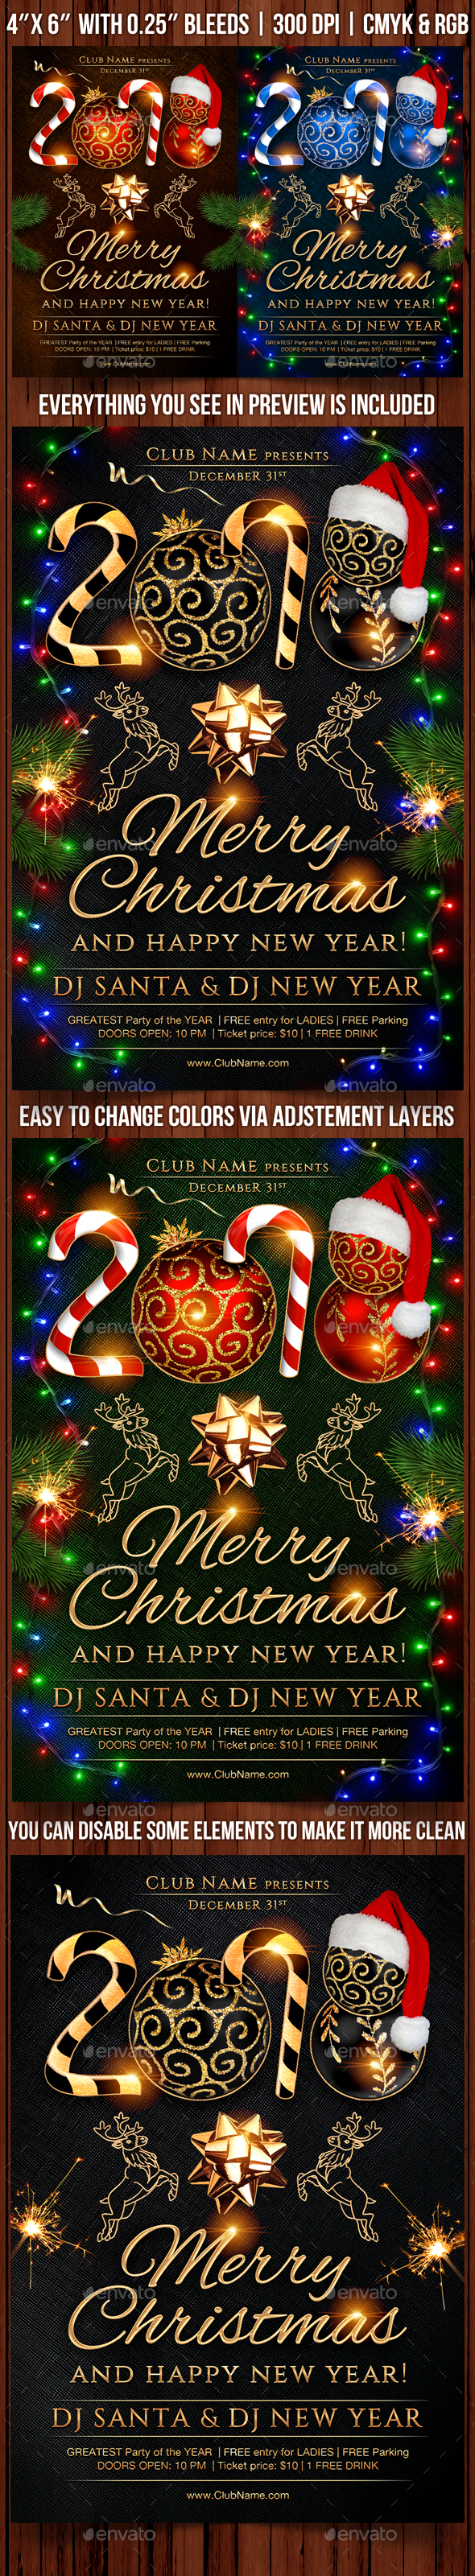 Christmas and New Year Party Flyer Template